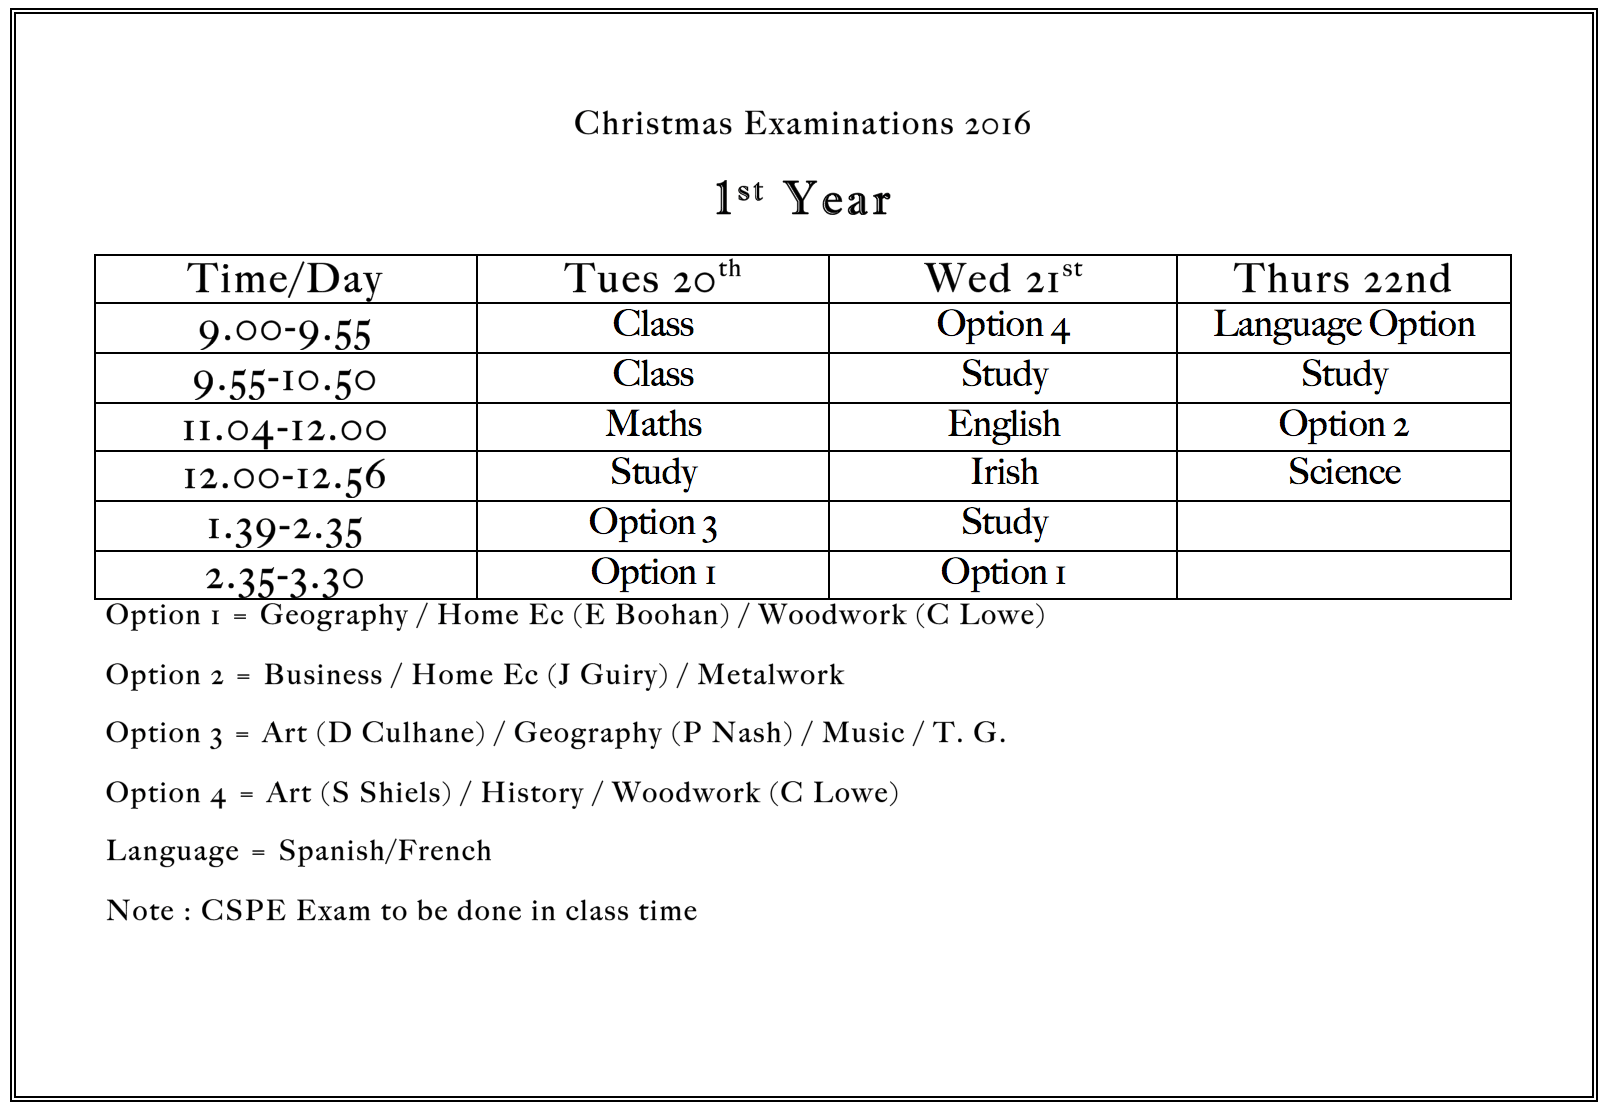 Dec 2016: Christmas Exam Time Table for 1st Year Students